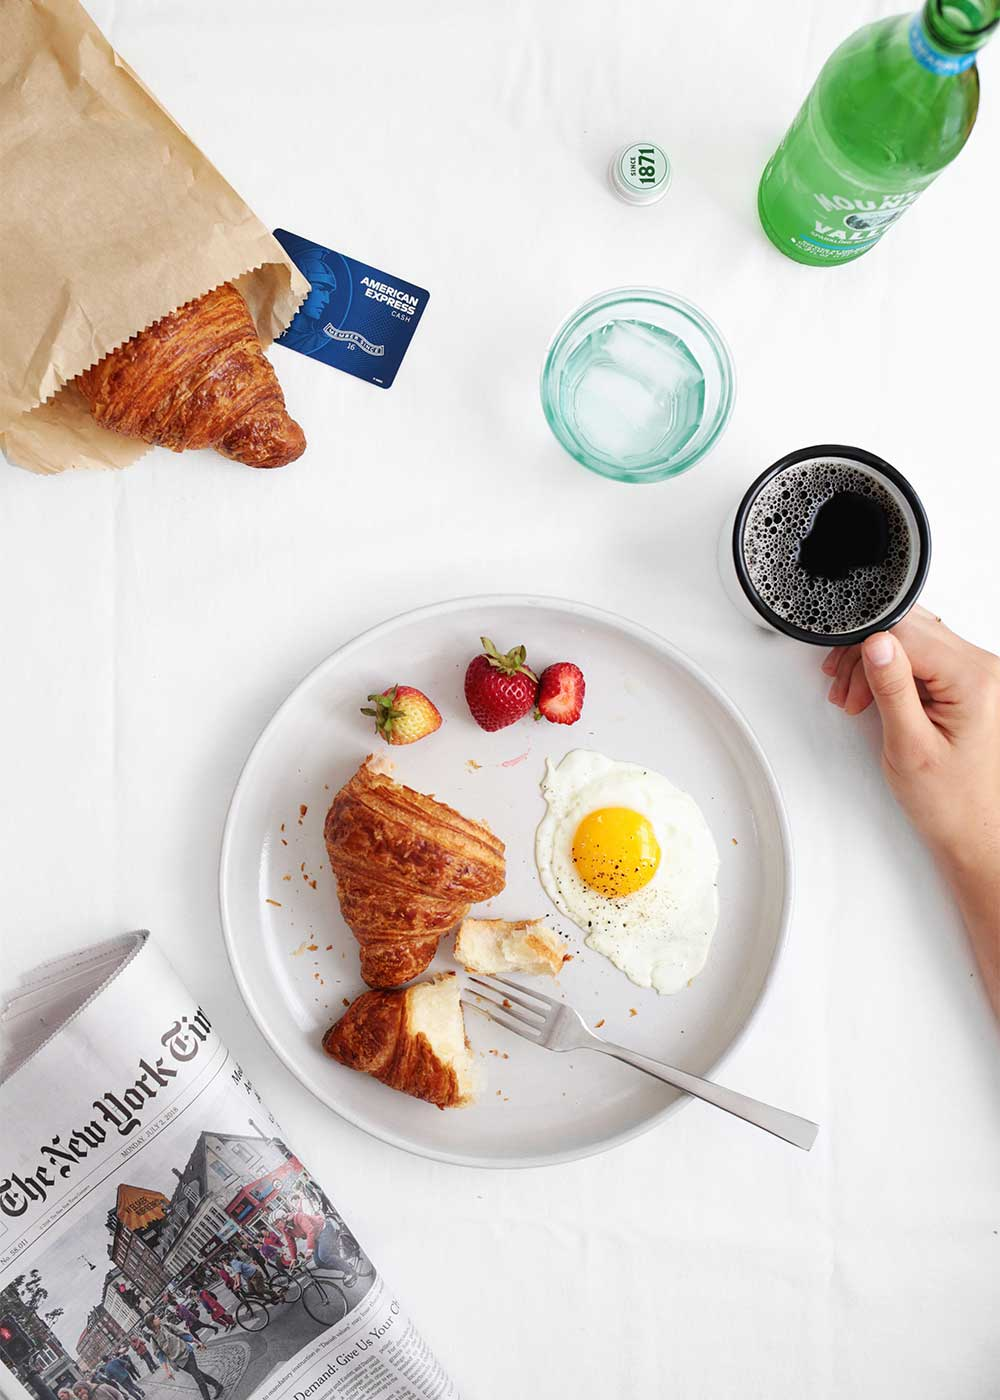 Breakfast scene with croissant and egg